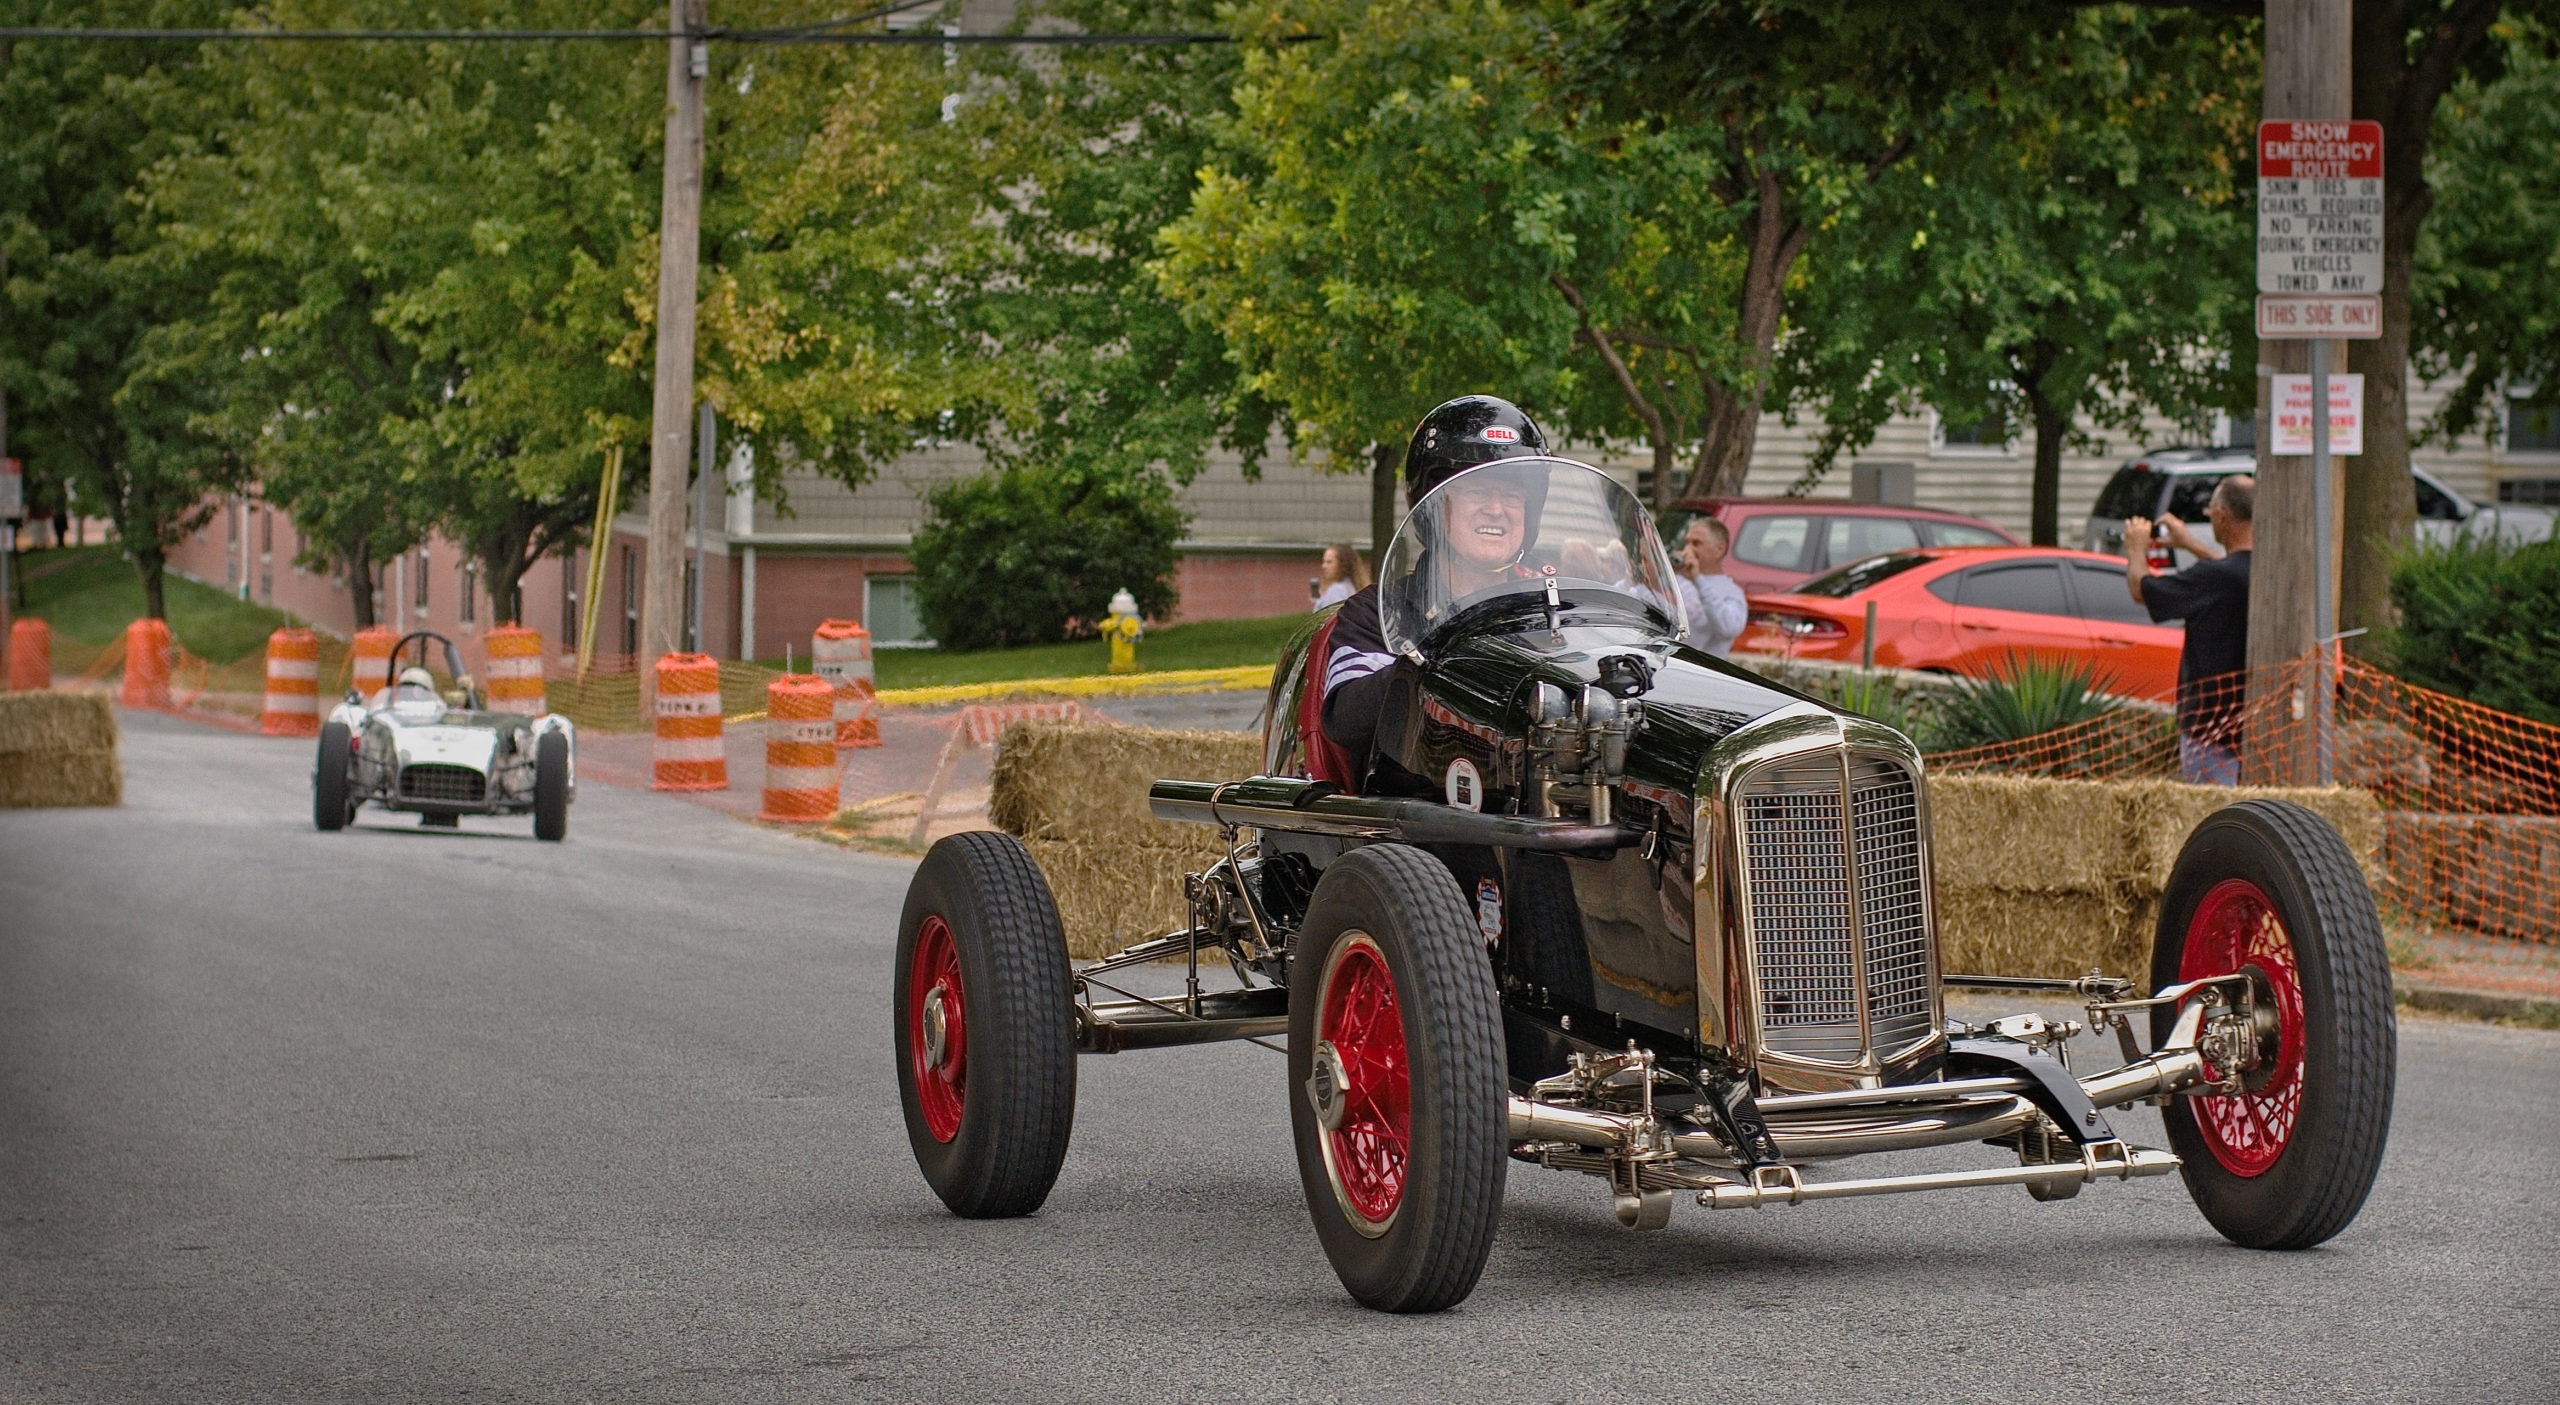 Return to the golden age of early American Sports Car racing at Coatesville Invitational Vintage Grand Prix